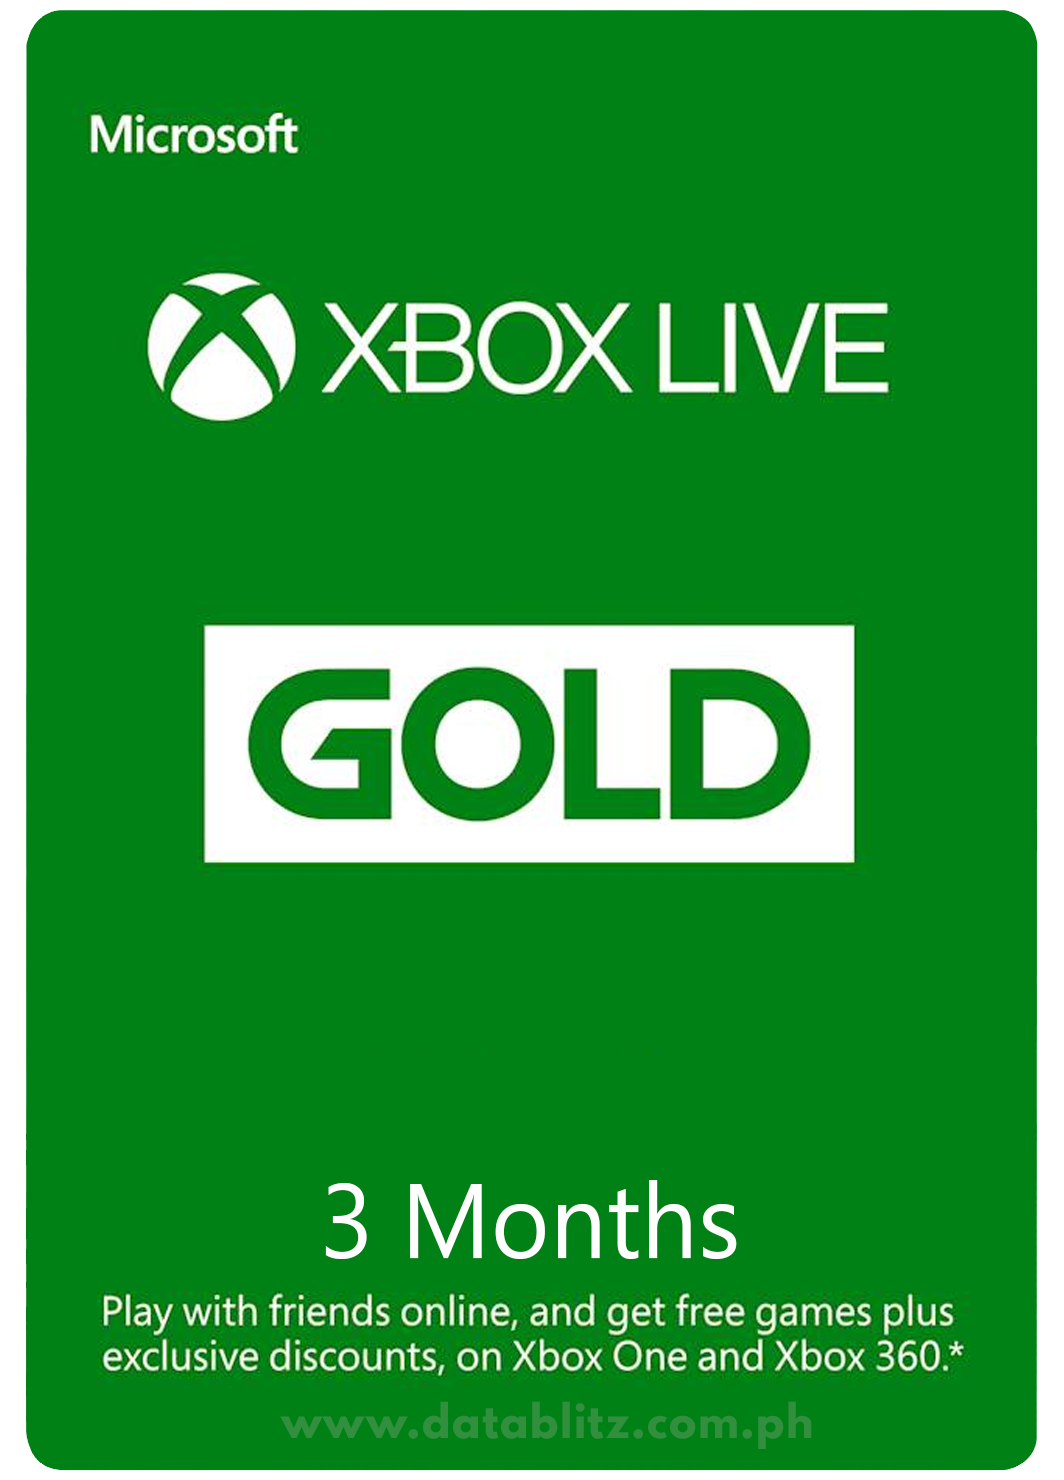 XBOX LIVE GOLD DIGITAL CODE: 3 MONTHS MEMBERSHIP US